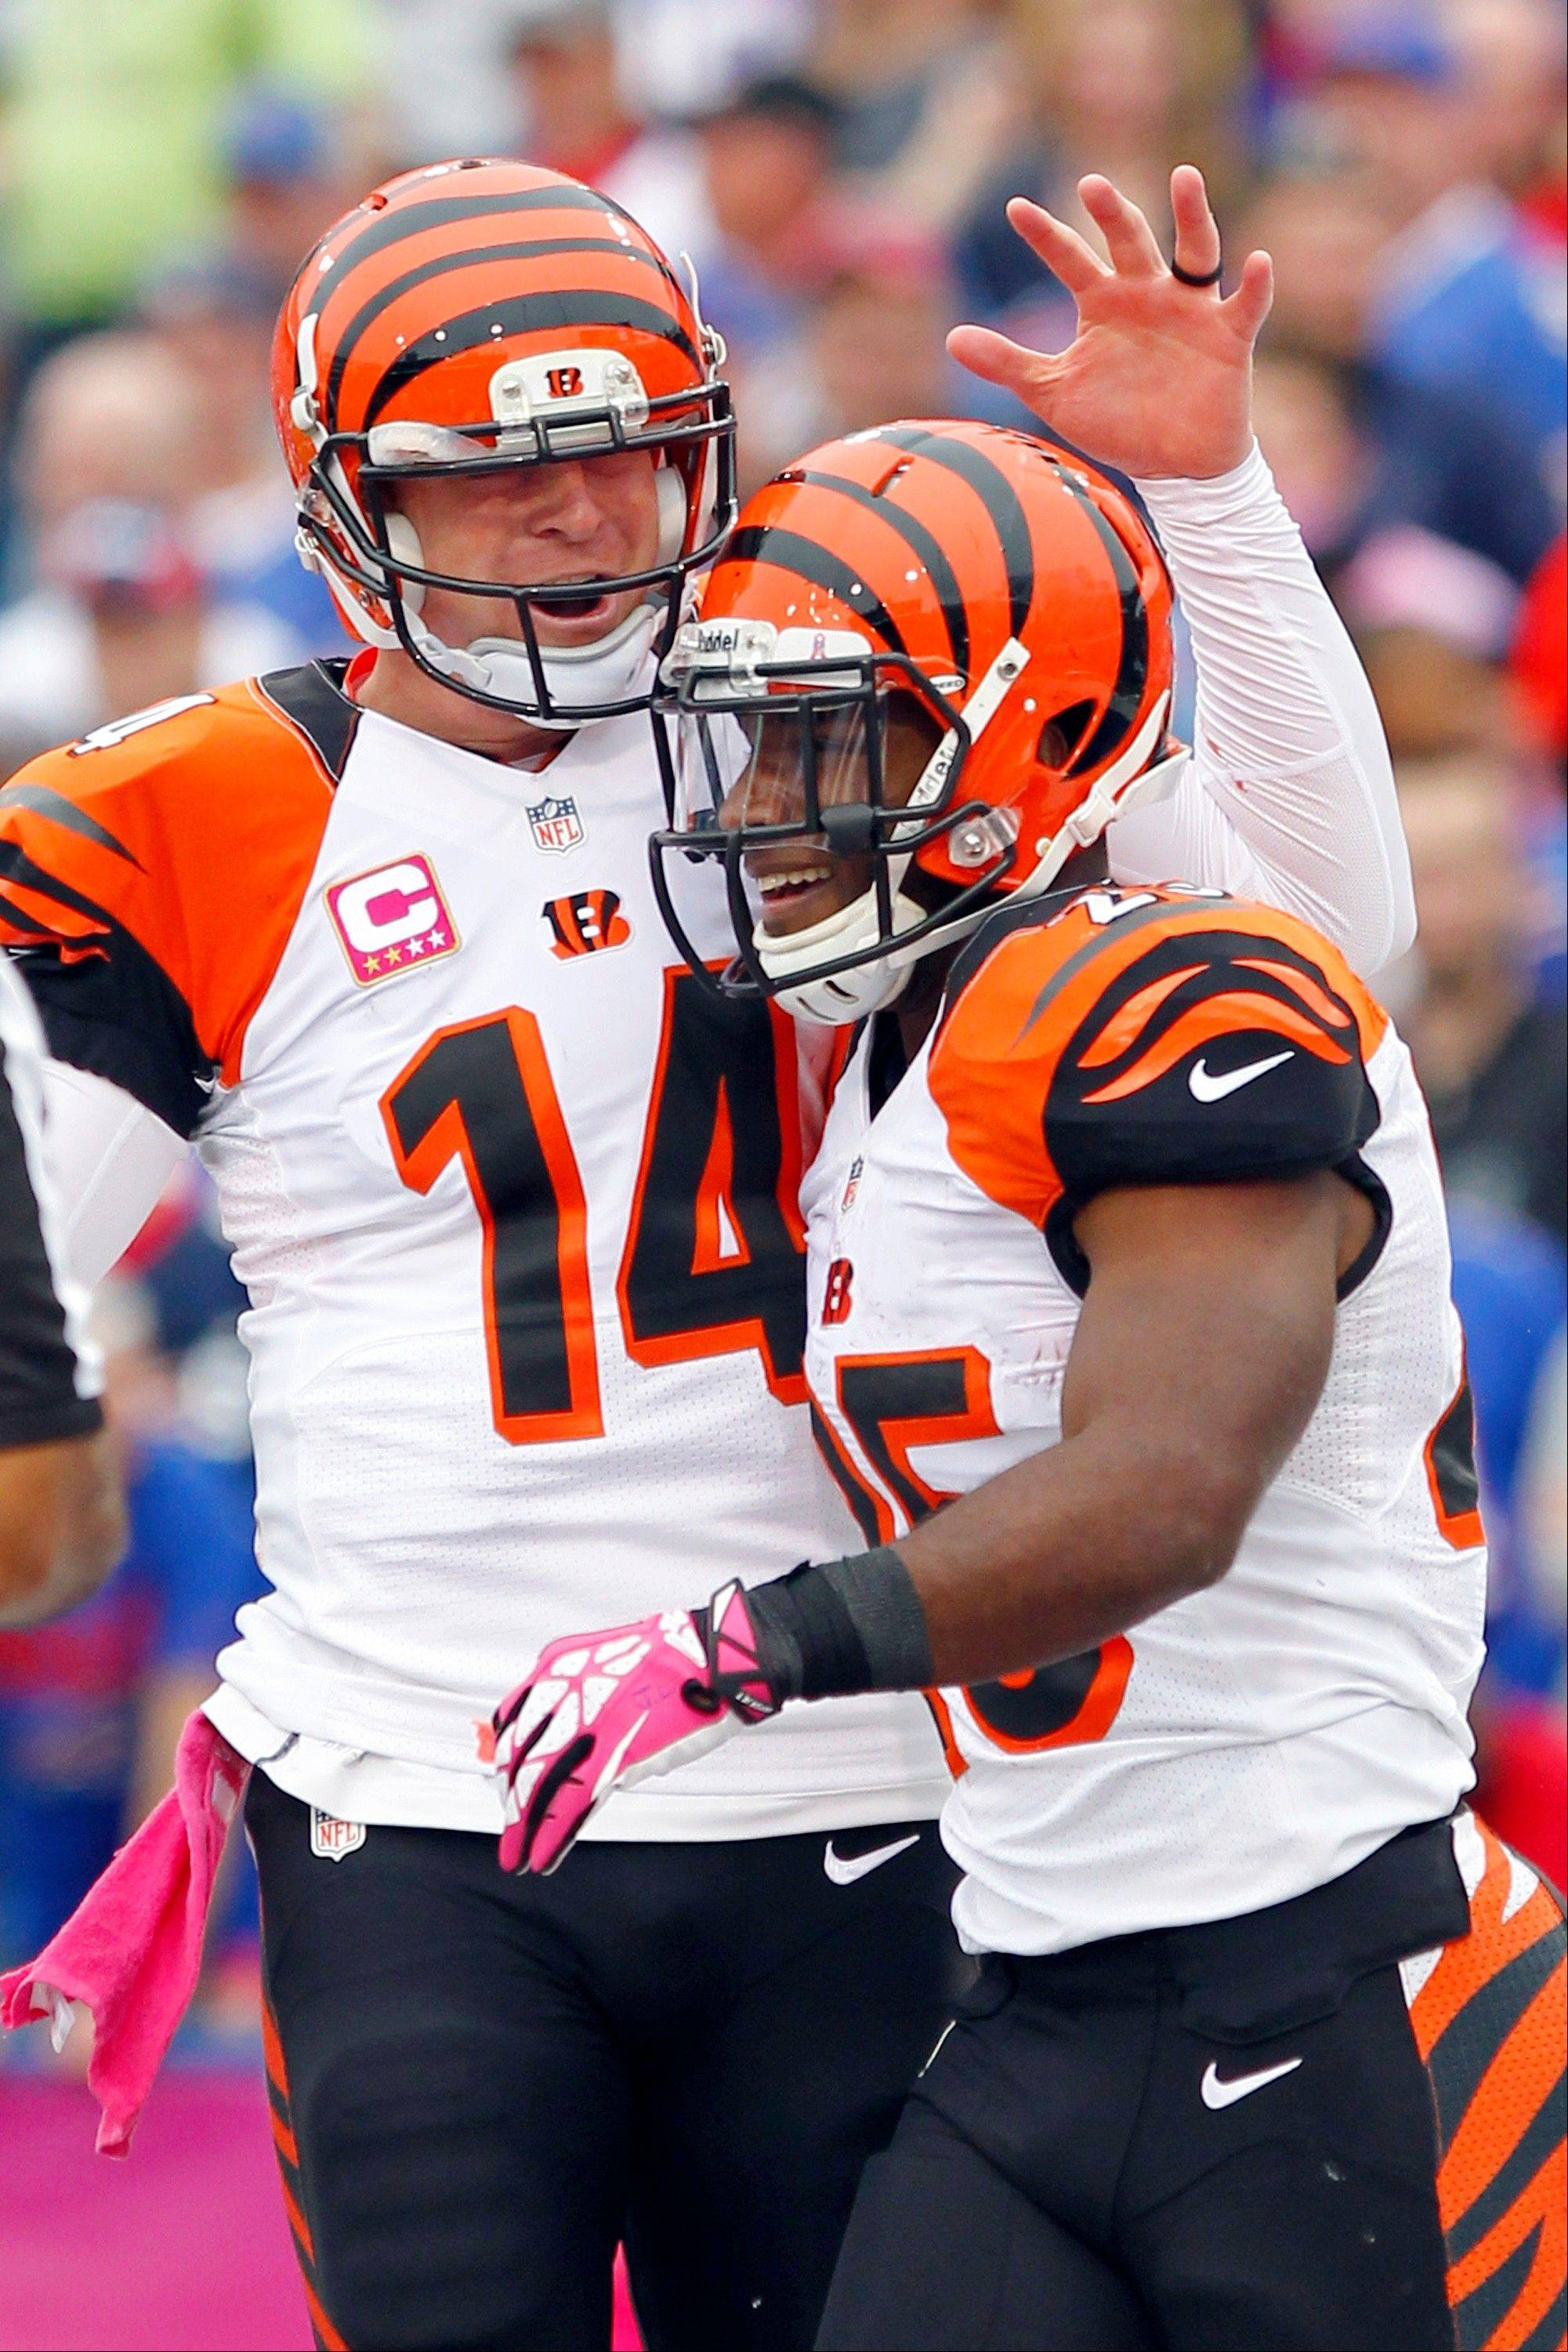 Cincinnati Bengals running back Gio Bernard (25) is greeted by quarterback Andy Dalton (14) after scoring against the Buffalo Bills in the third quarter of Sunday's game in Orchard Park, N.Y.